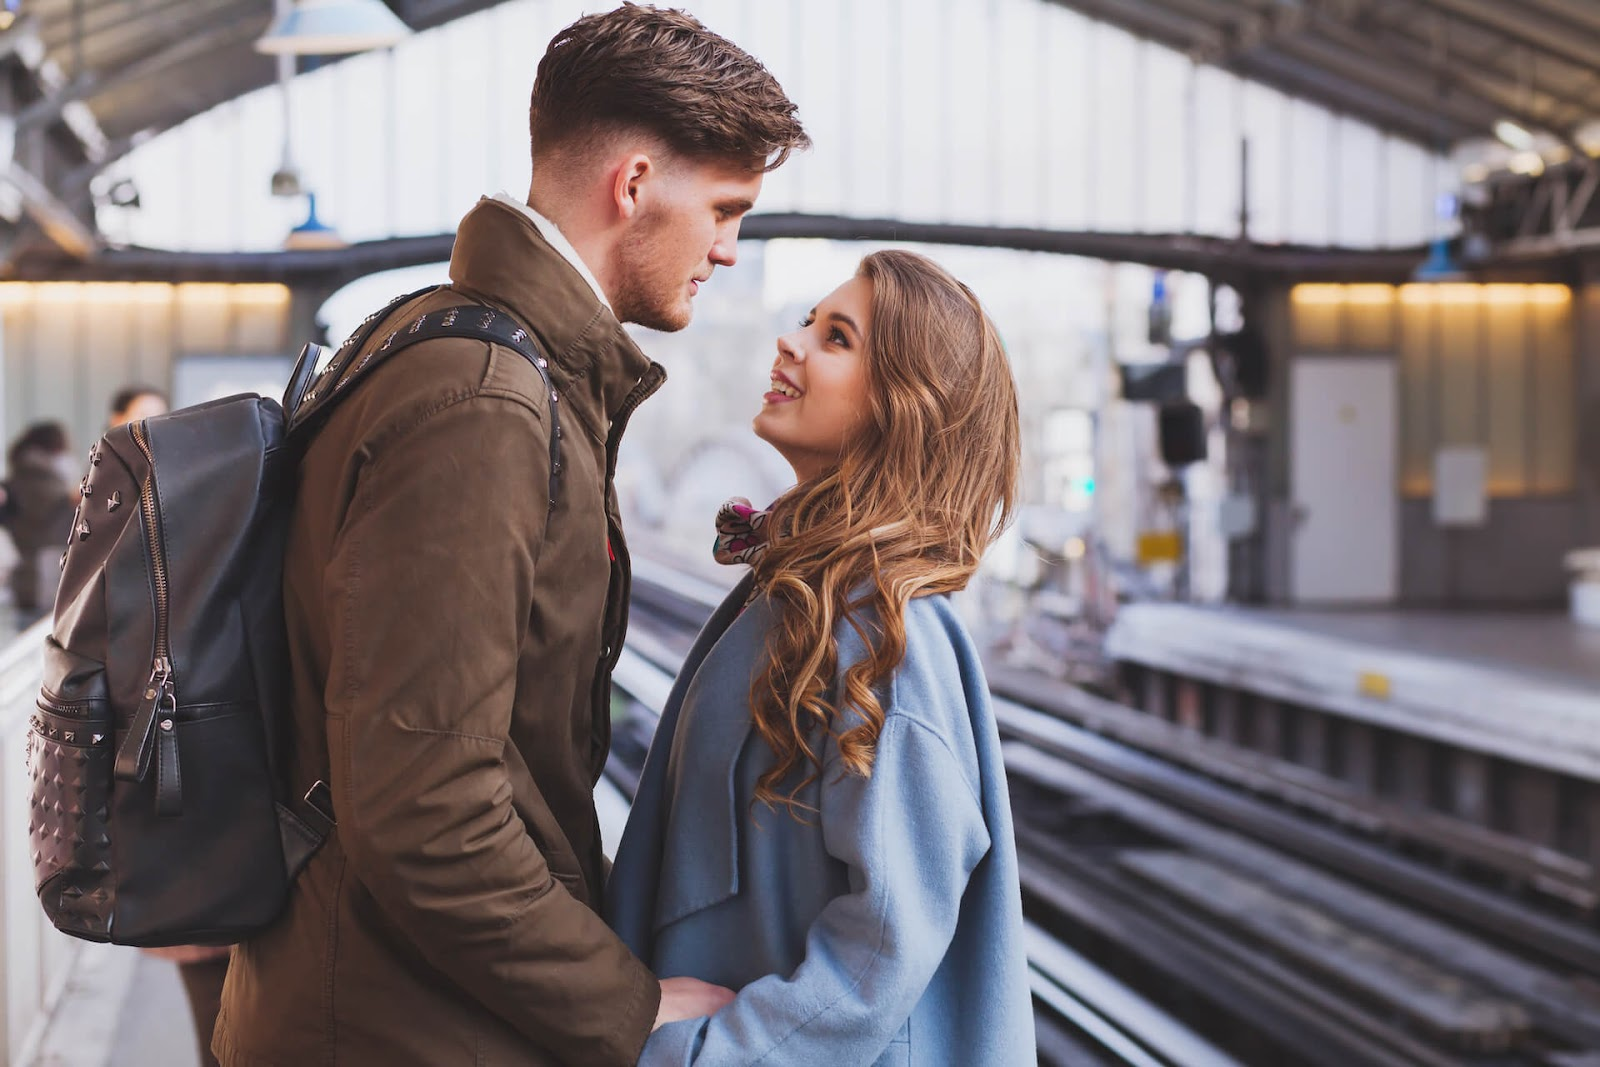 Man and woman looking longingly into each other's eyes at a train station